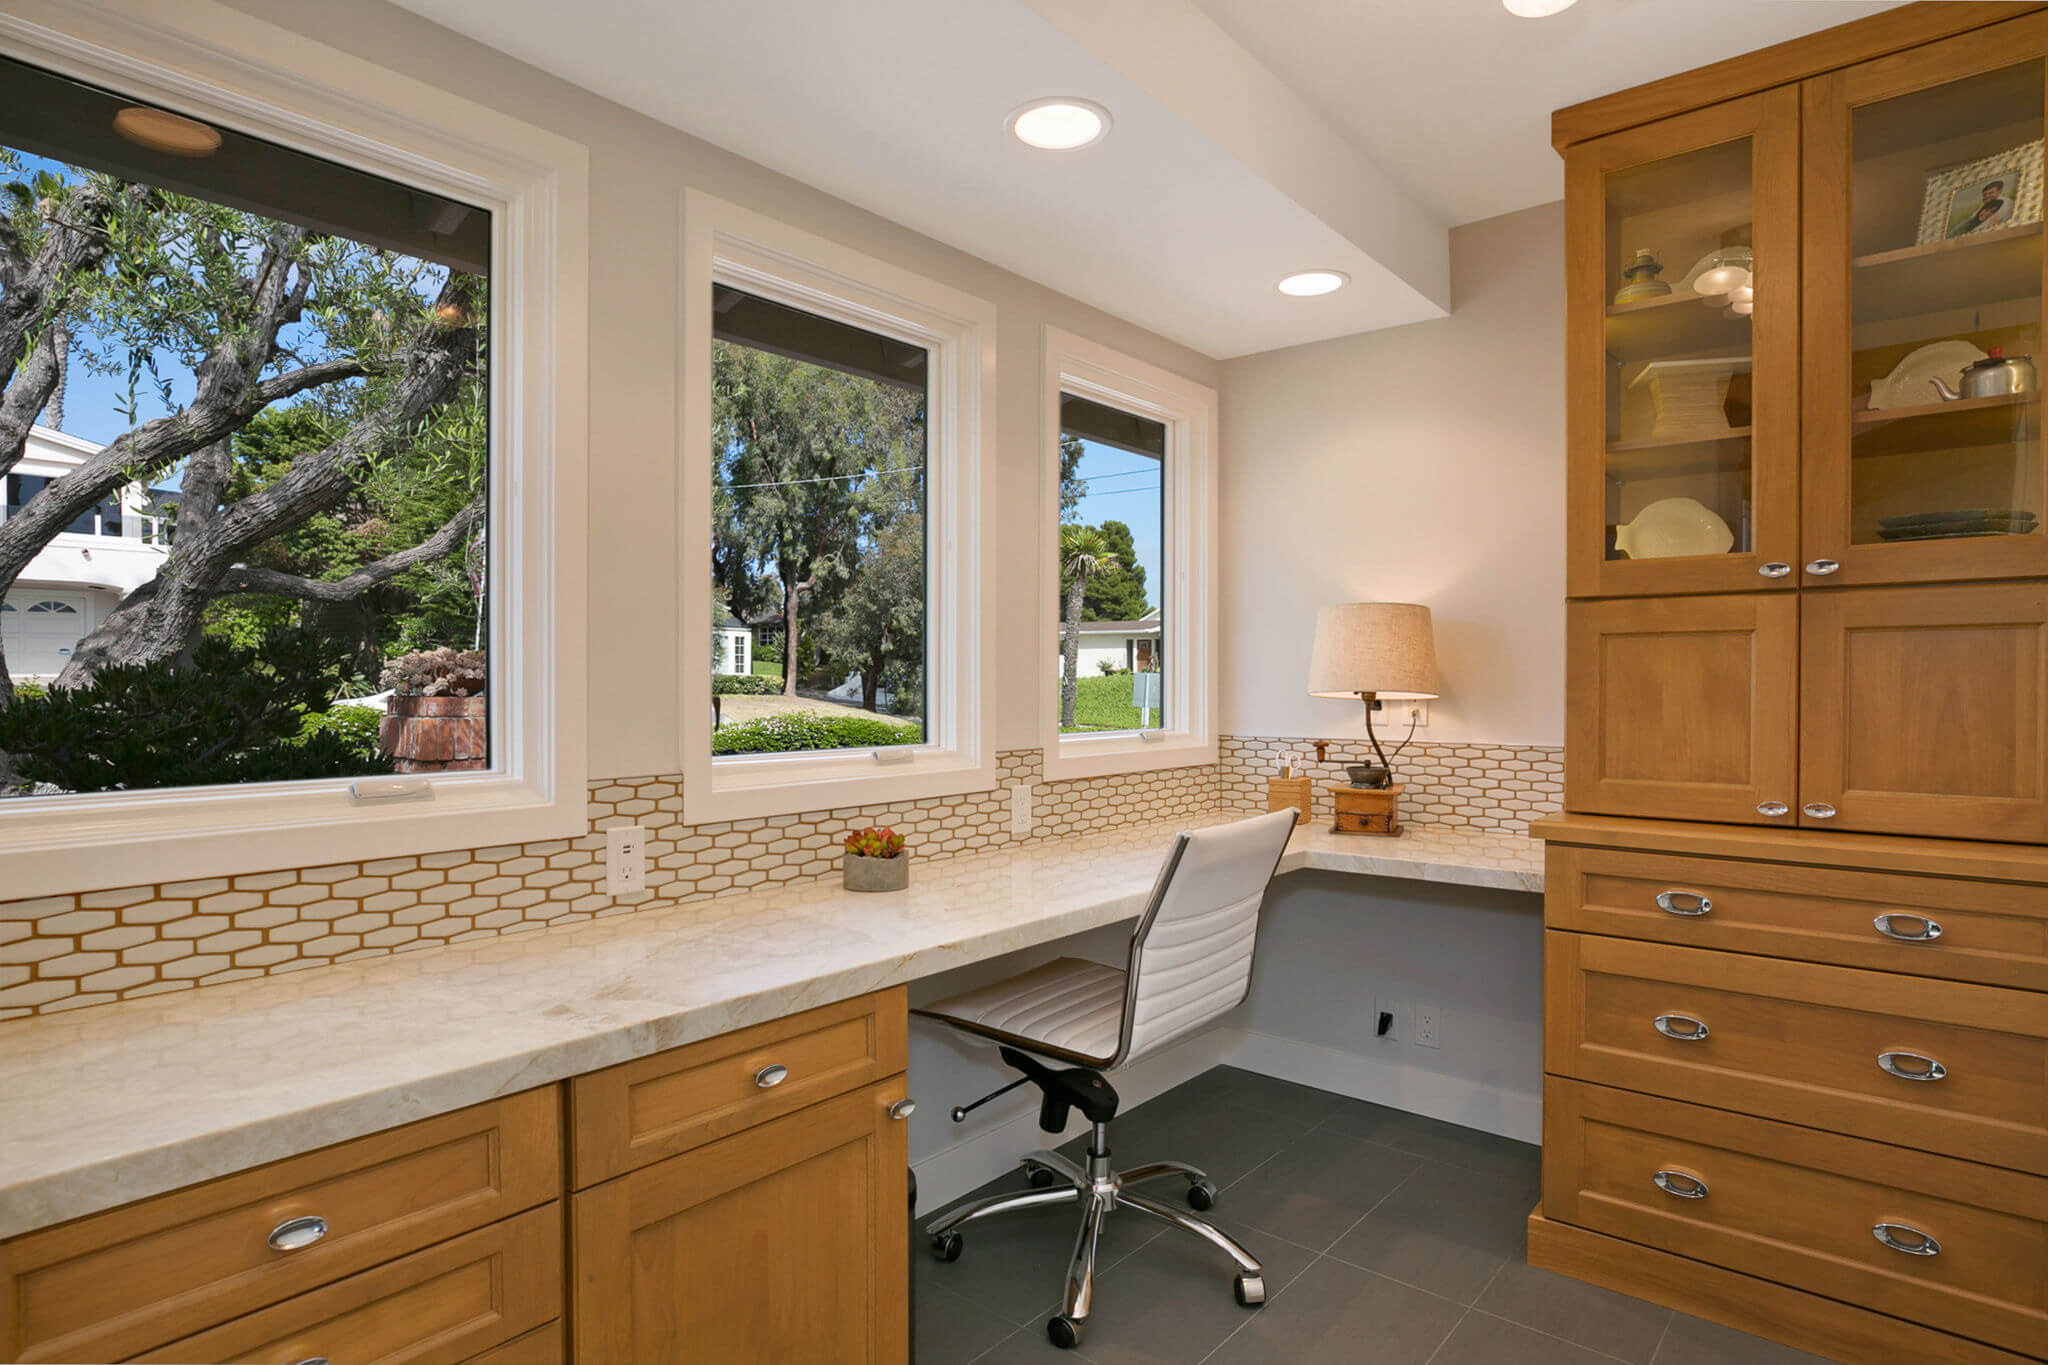 Home Office Renovation with Custom Cabinets, Custom Cabinets in Orange County Home Office, Newly Remodeled Home Office in Orange County